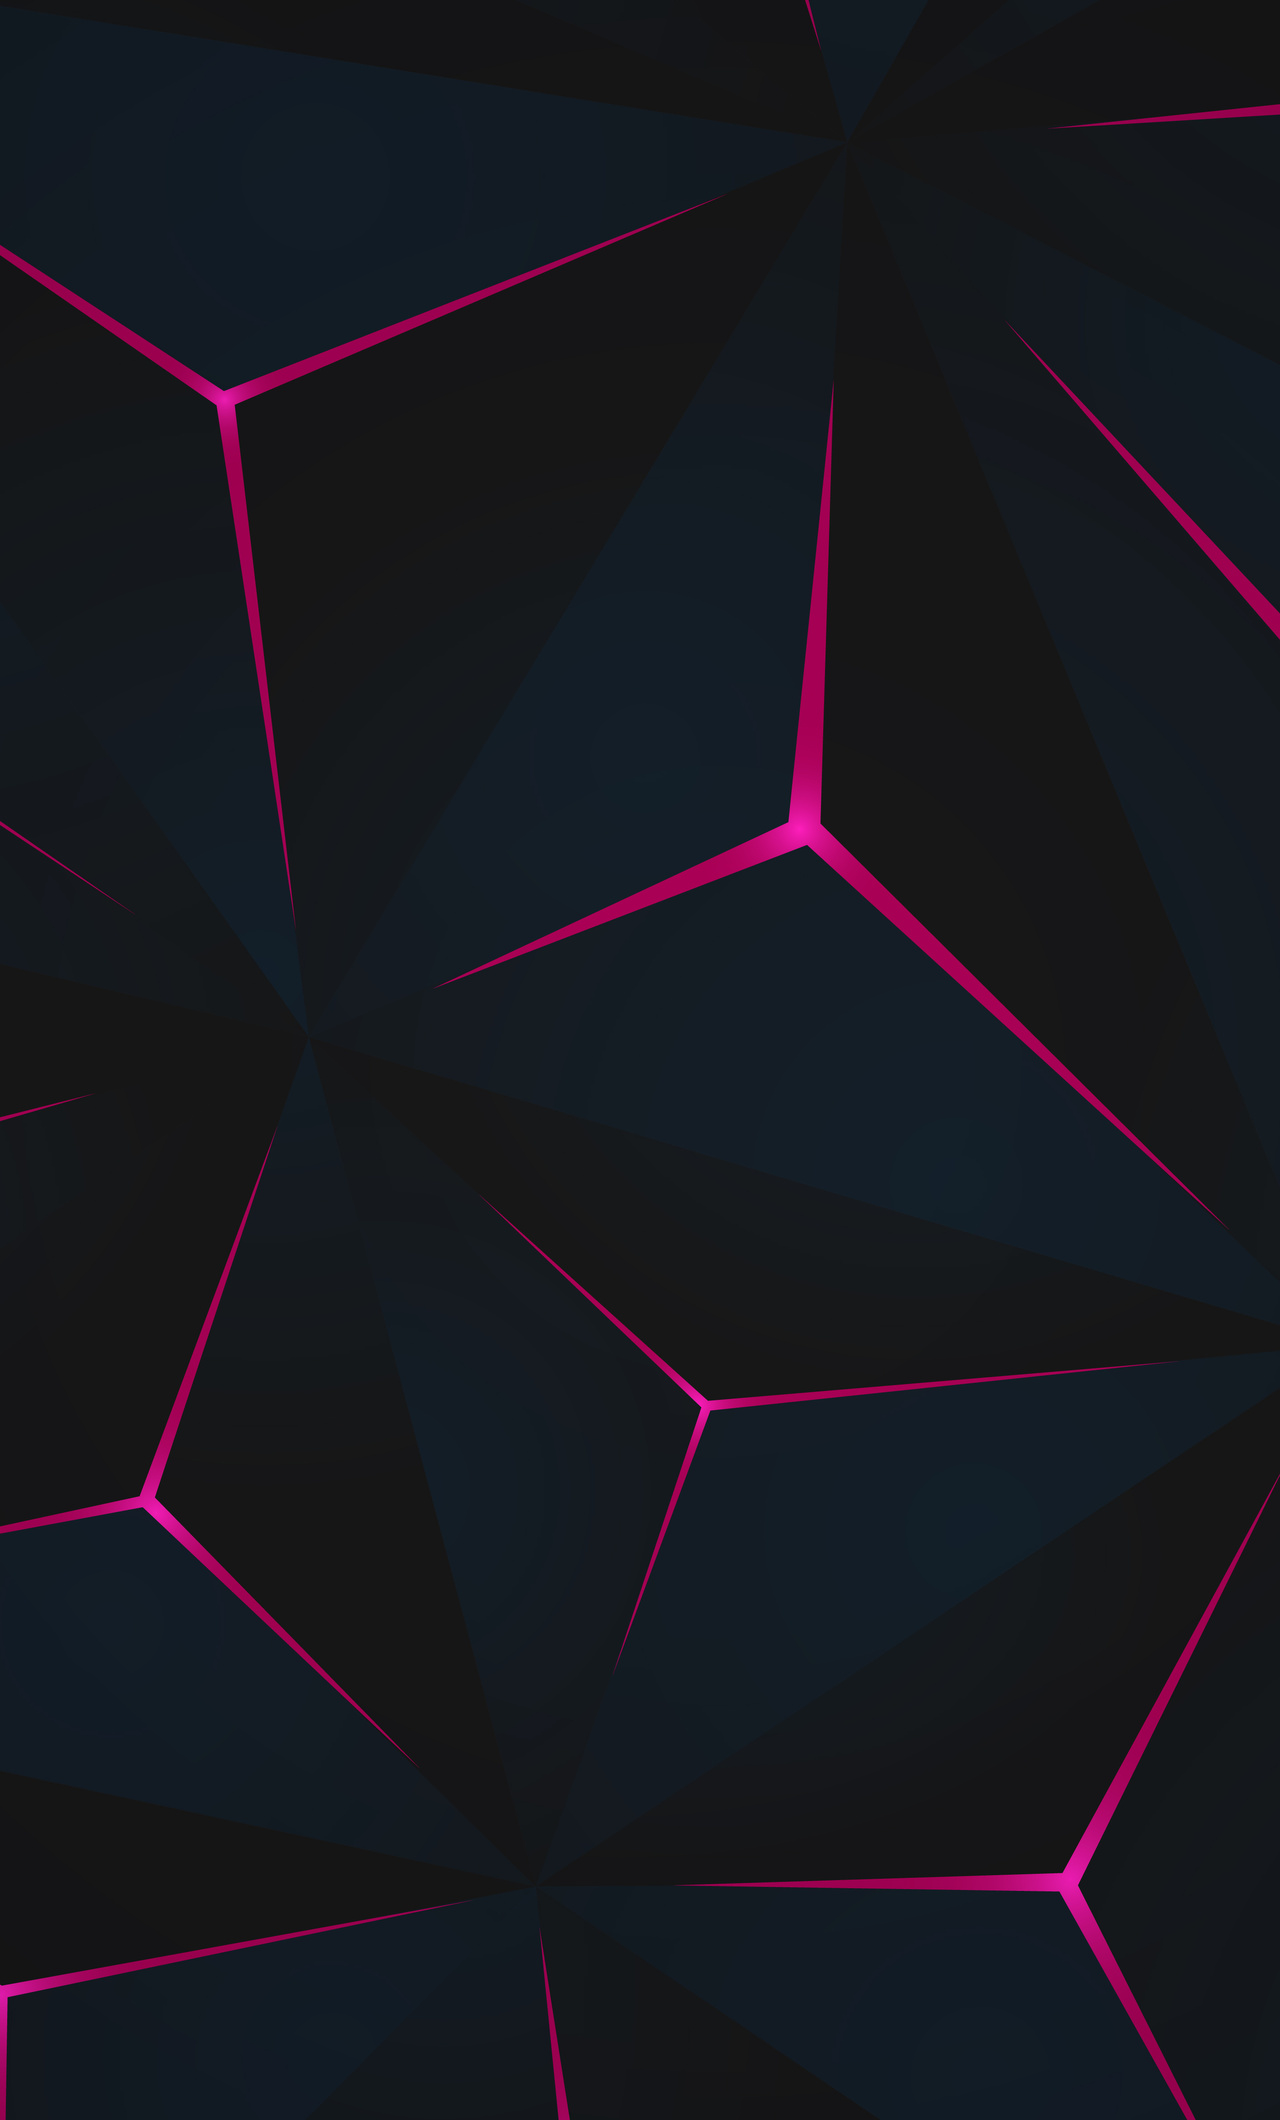 1280x2120 Legion Abstract 8k iPhone 6+ HD 4k Wallpapers ...